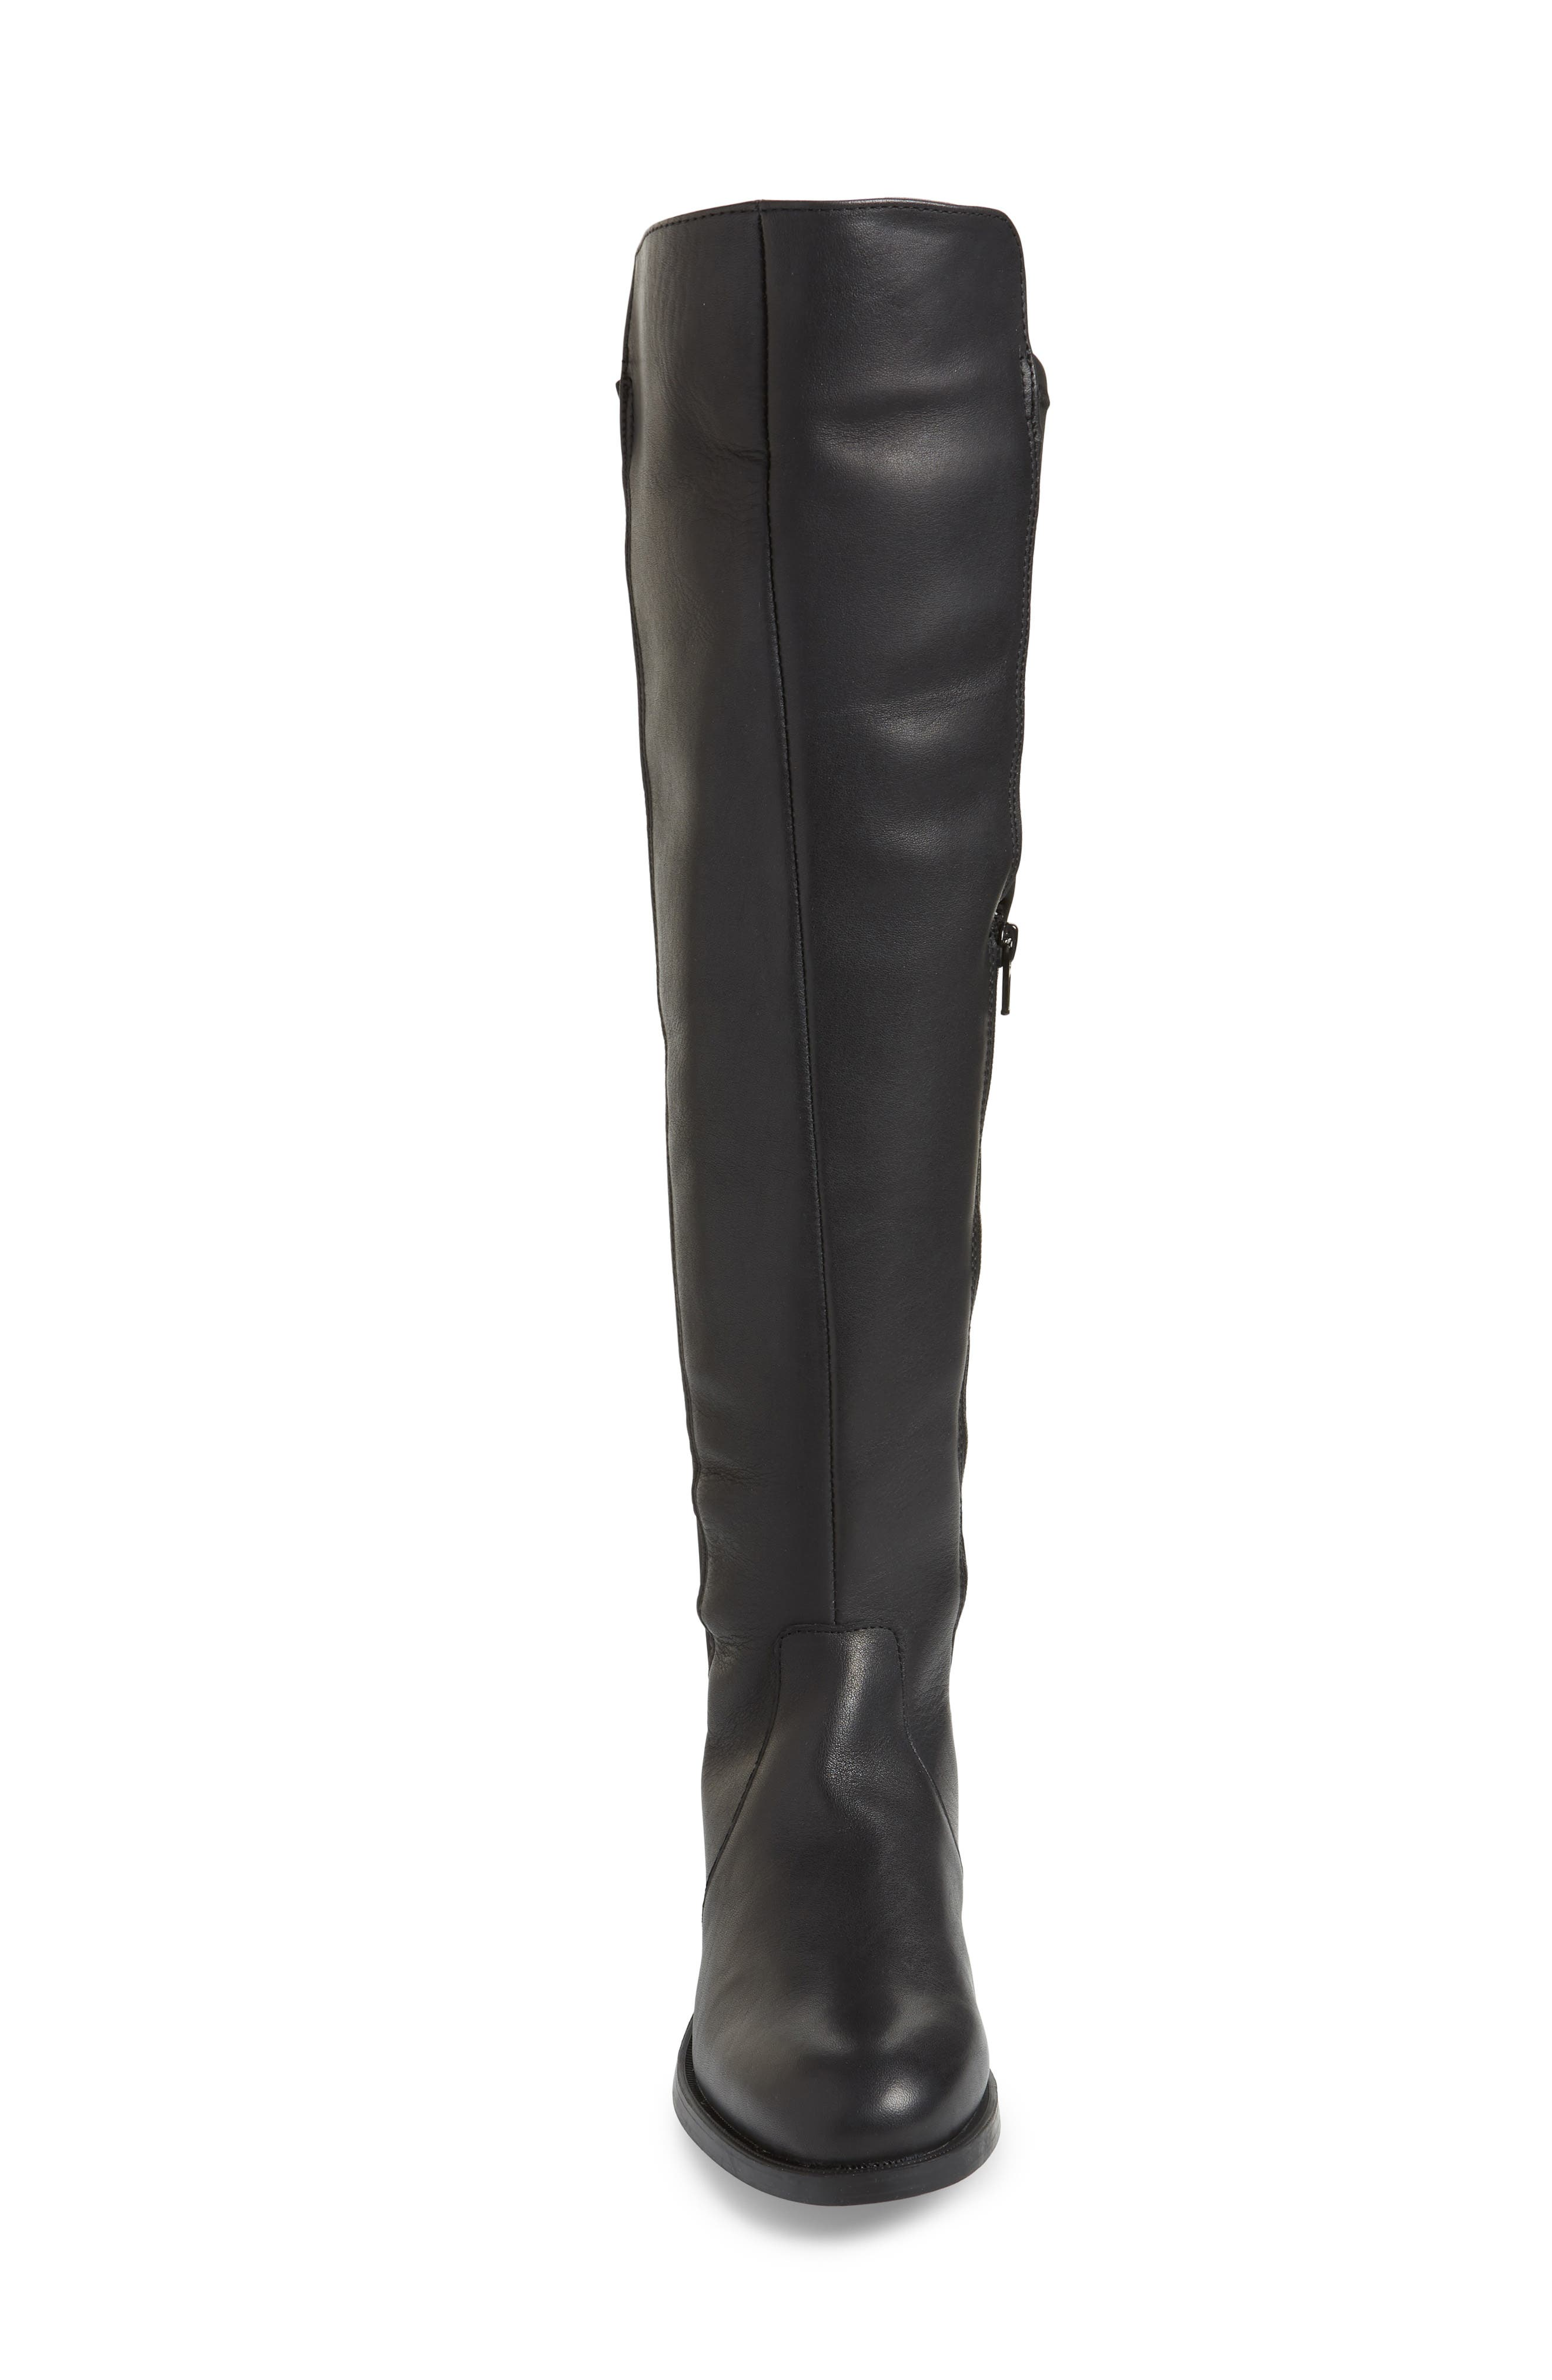 BOS. & CO.,                             Bunt Waterproof Over the Knee Boot,                             Alternate thumbnail 4, color,                             BLACK MELBOURNE/ LYCRA